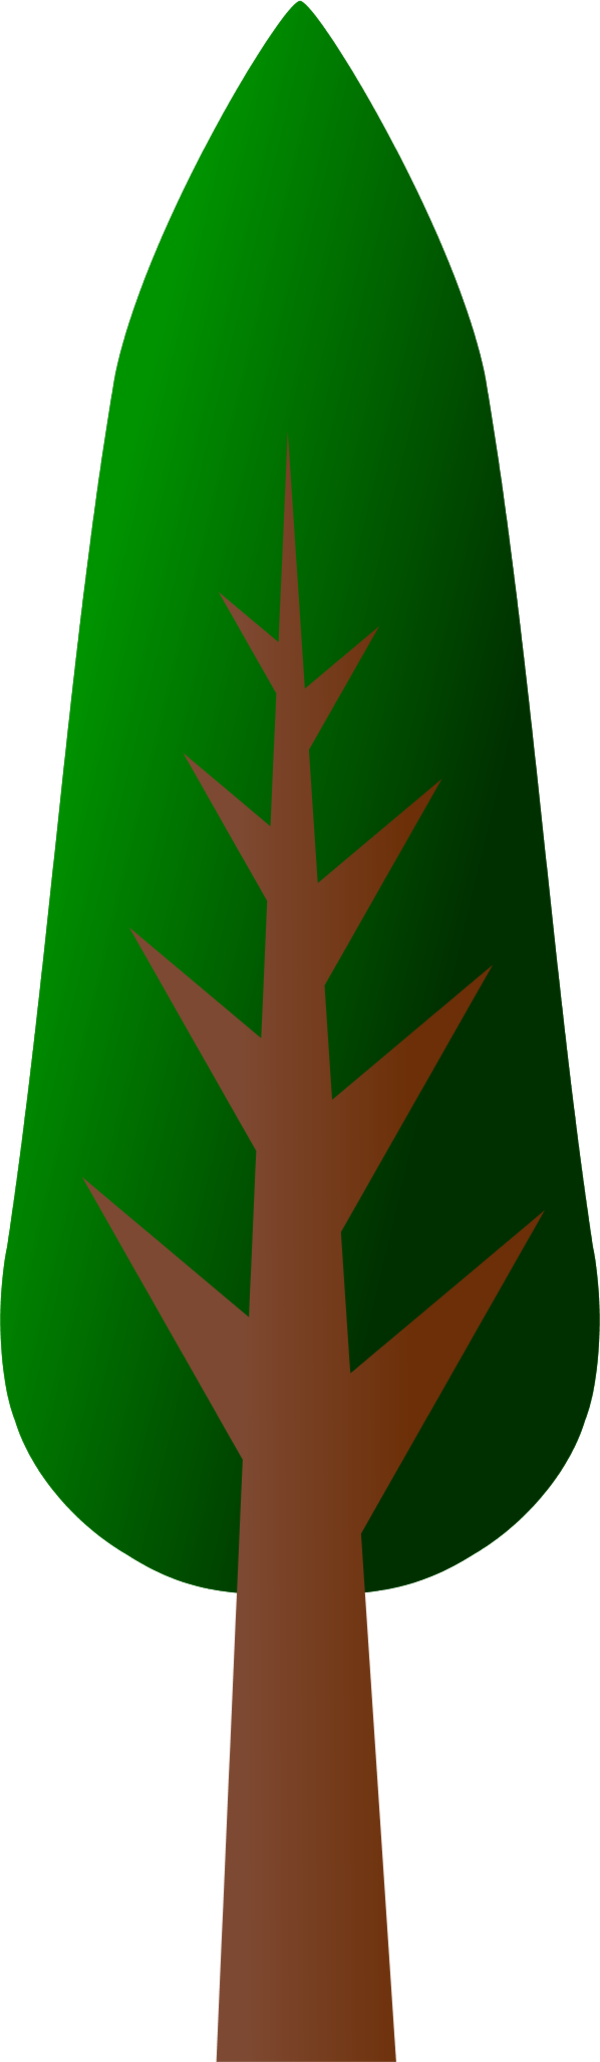 tree-clip-art-6153-large.png